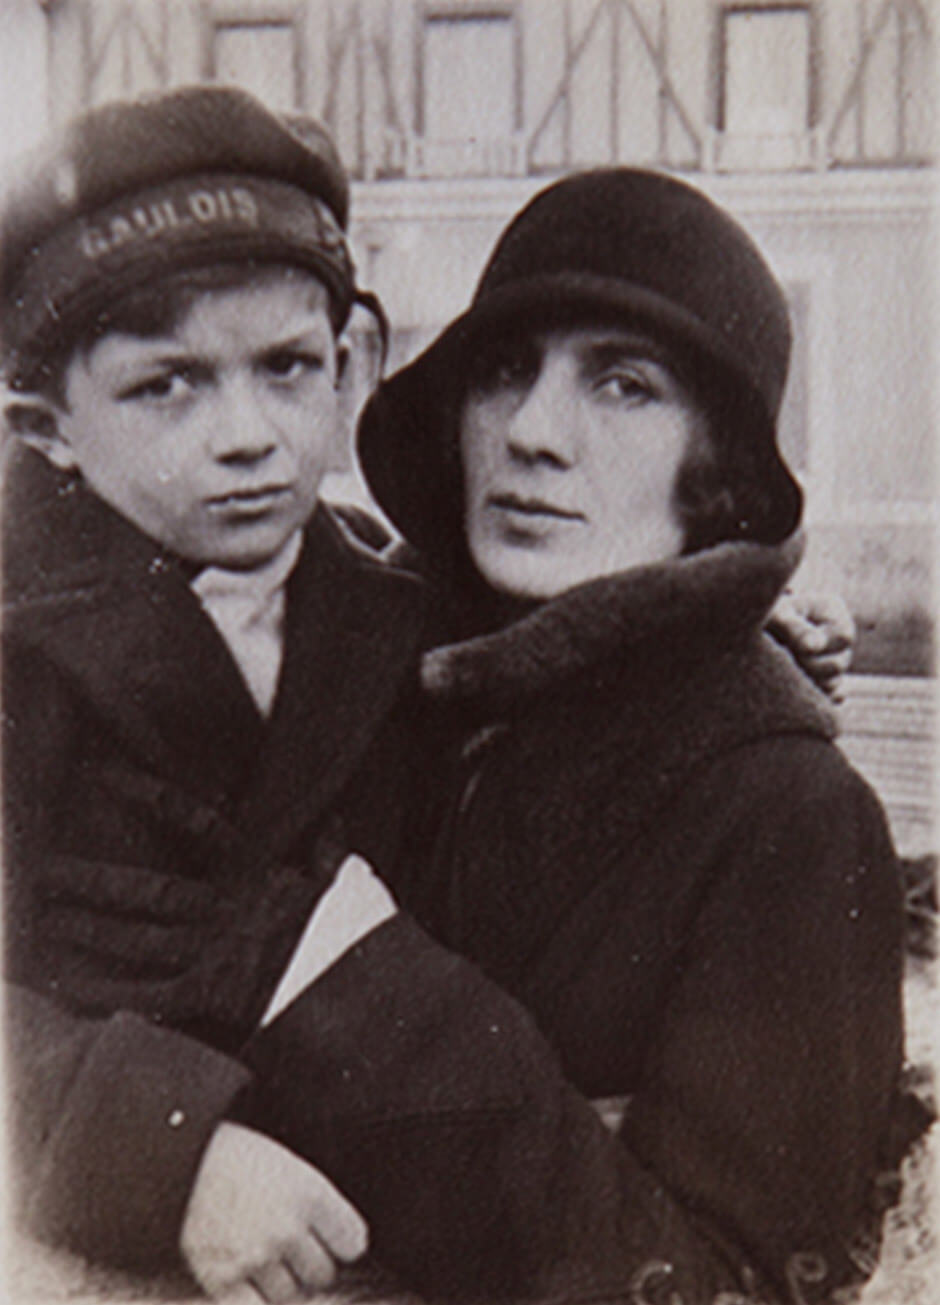 Art Canada Institute, Paraskeva Allegri and her son, Ben Allegri, in Chatou, Paris, 1930.